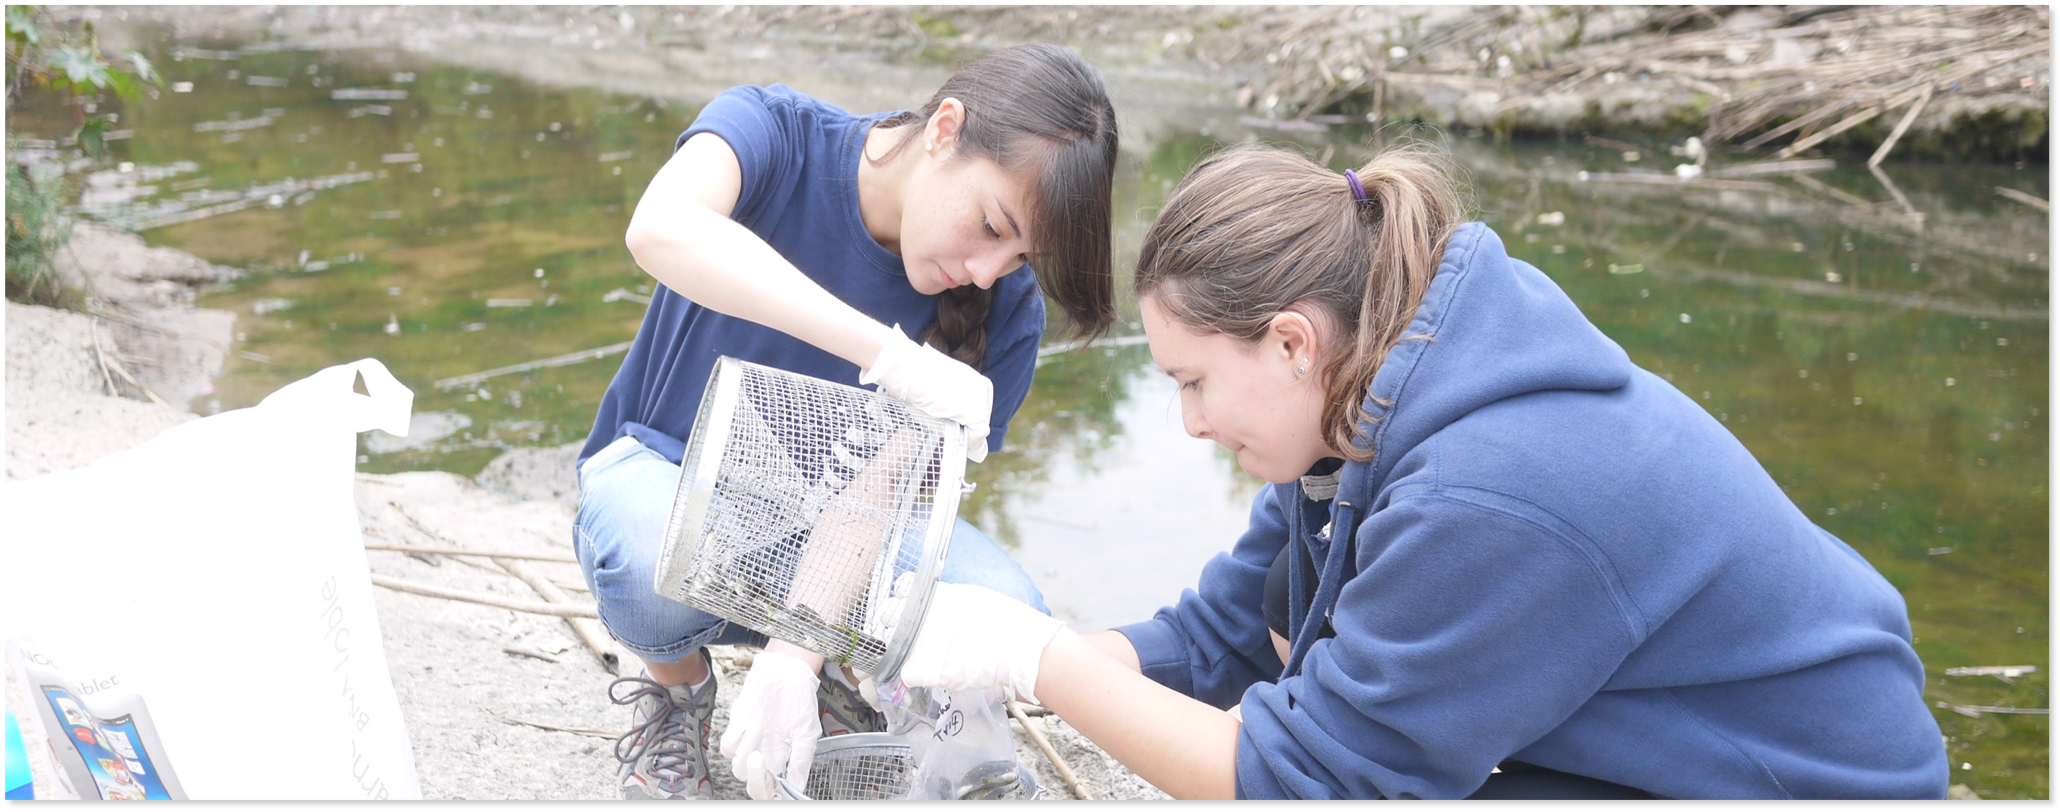 women scientists working in field